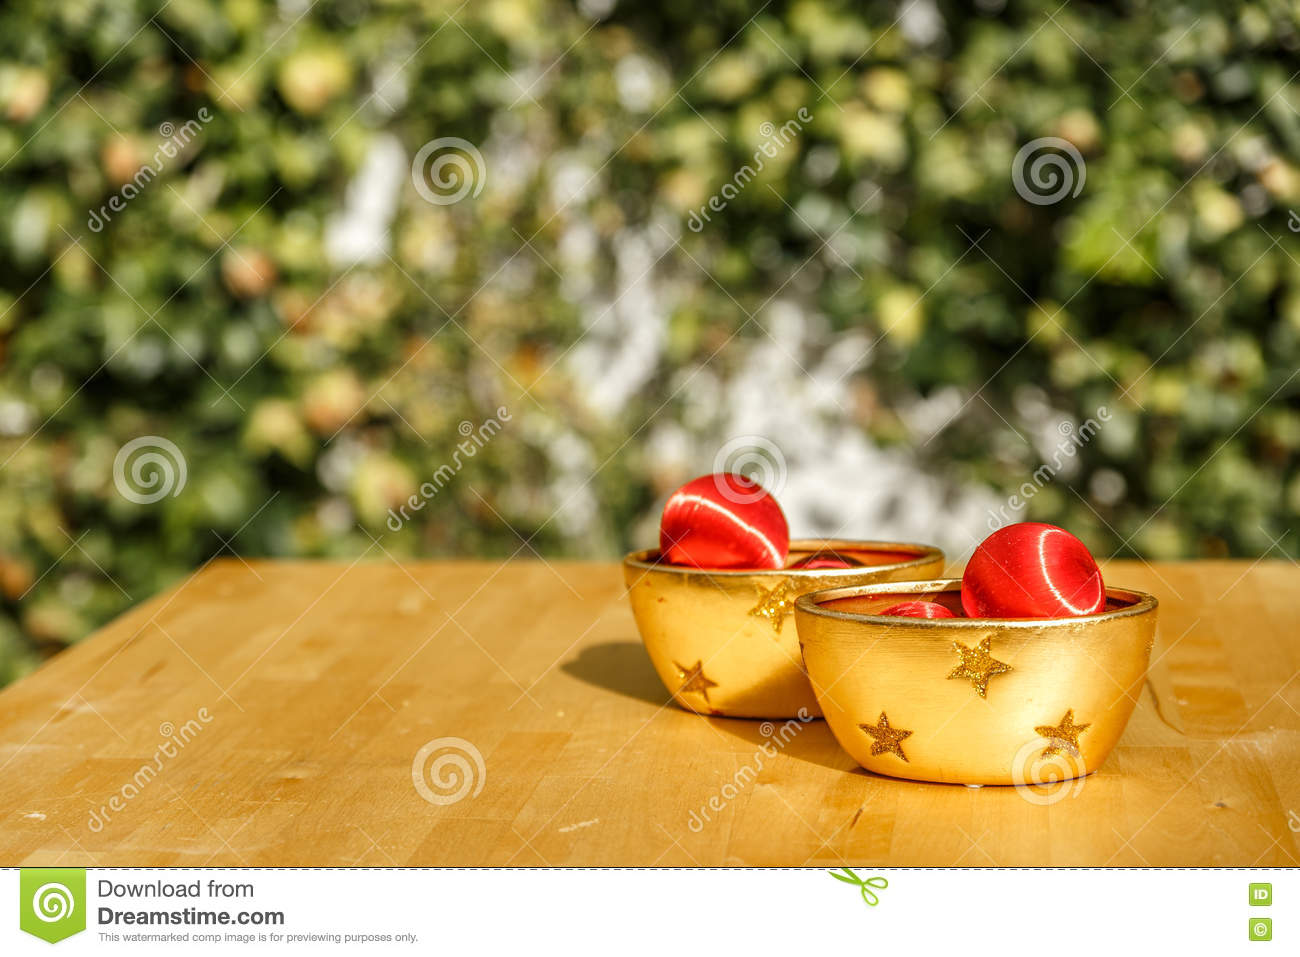 Red christmas balls and yellow decorative bowls on a wooden table